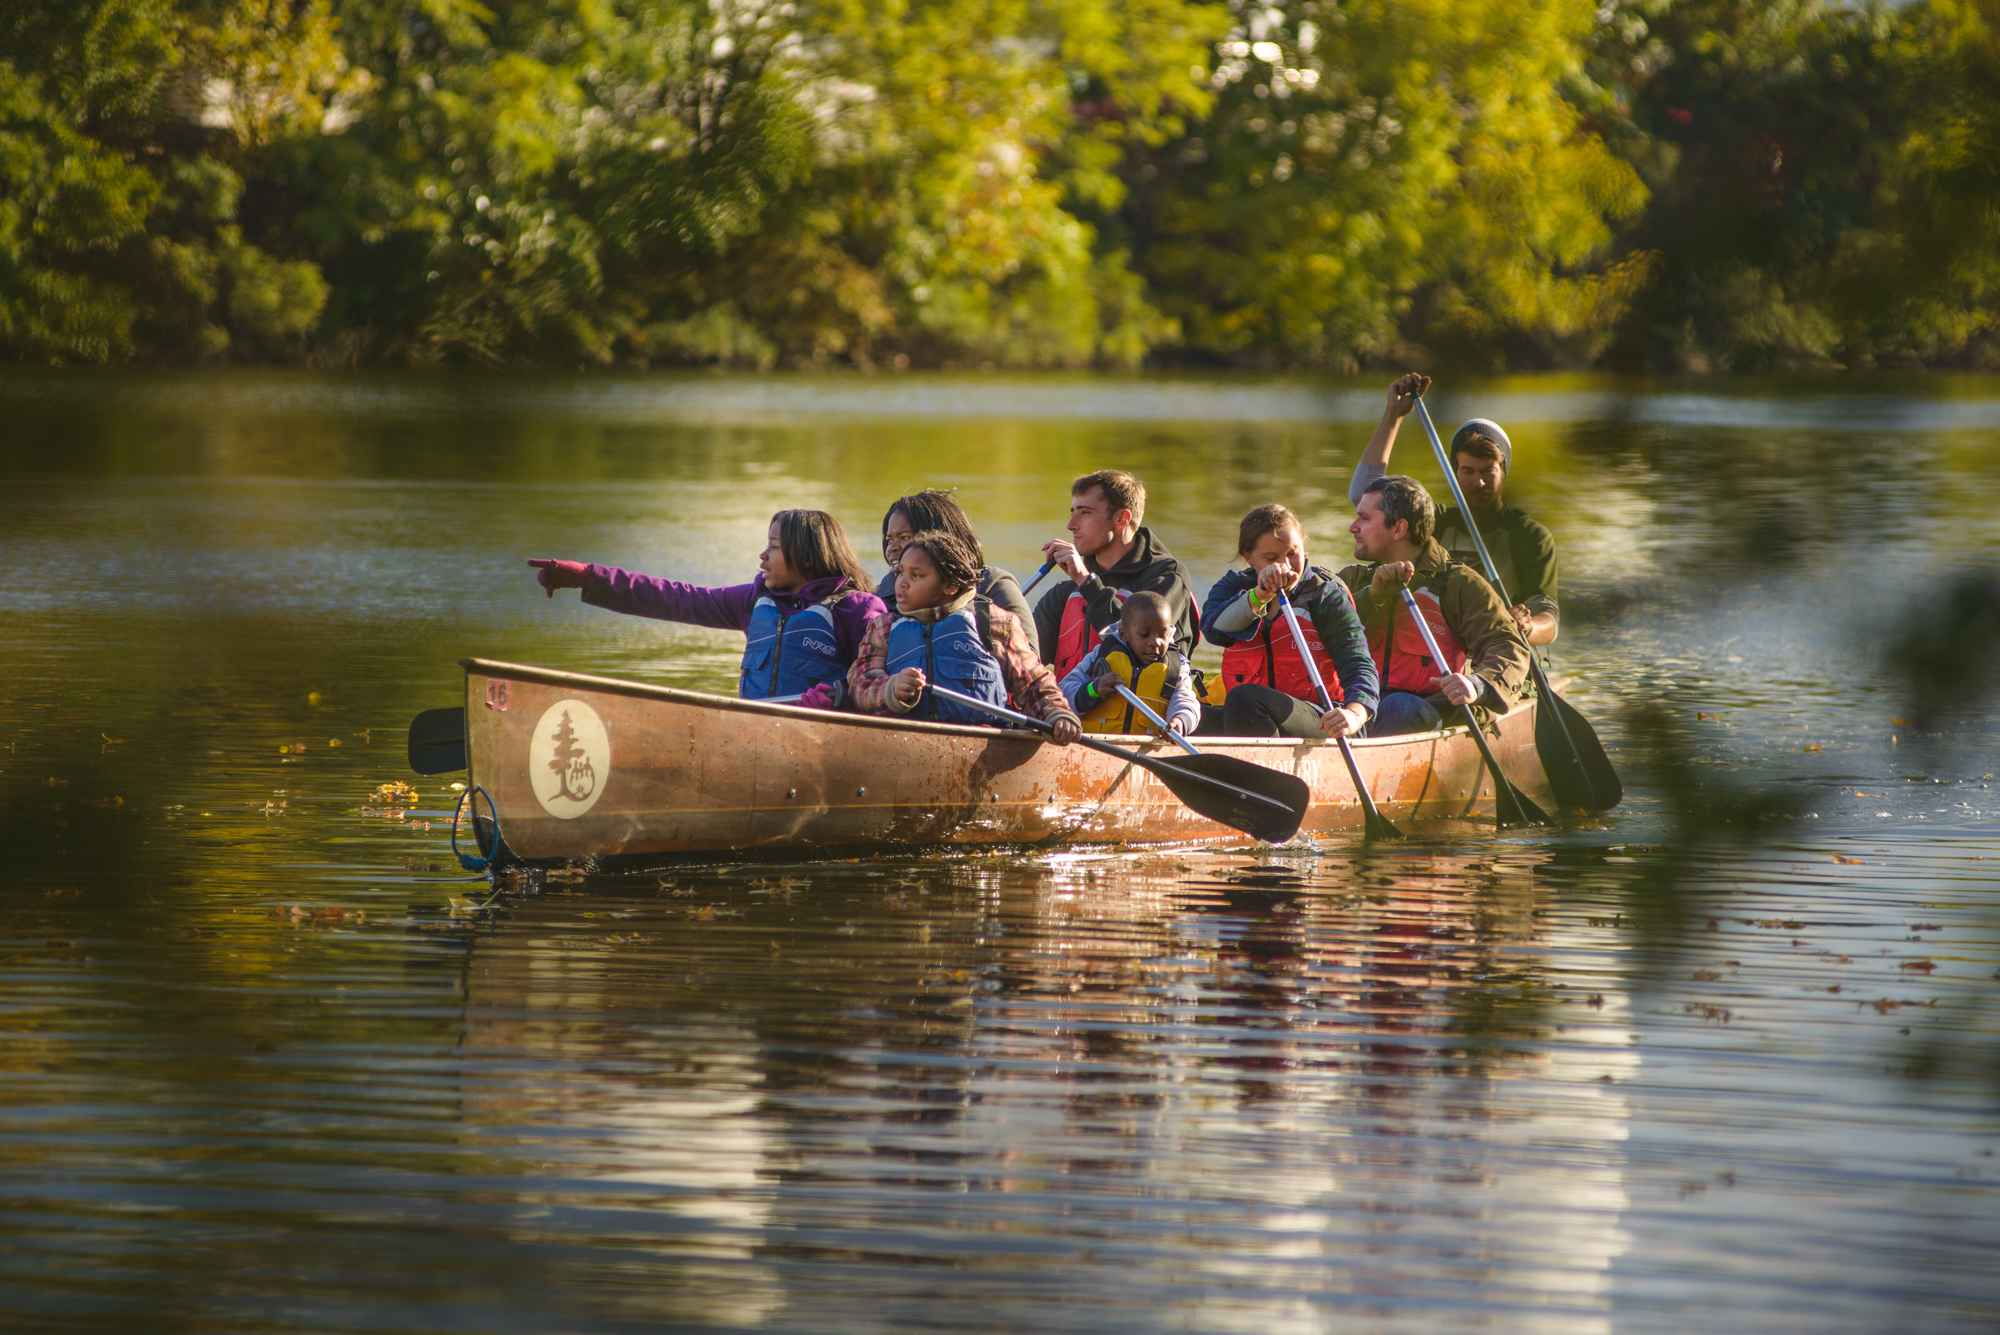 Canoeing on the Schuylkill River